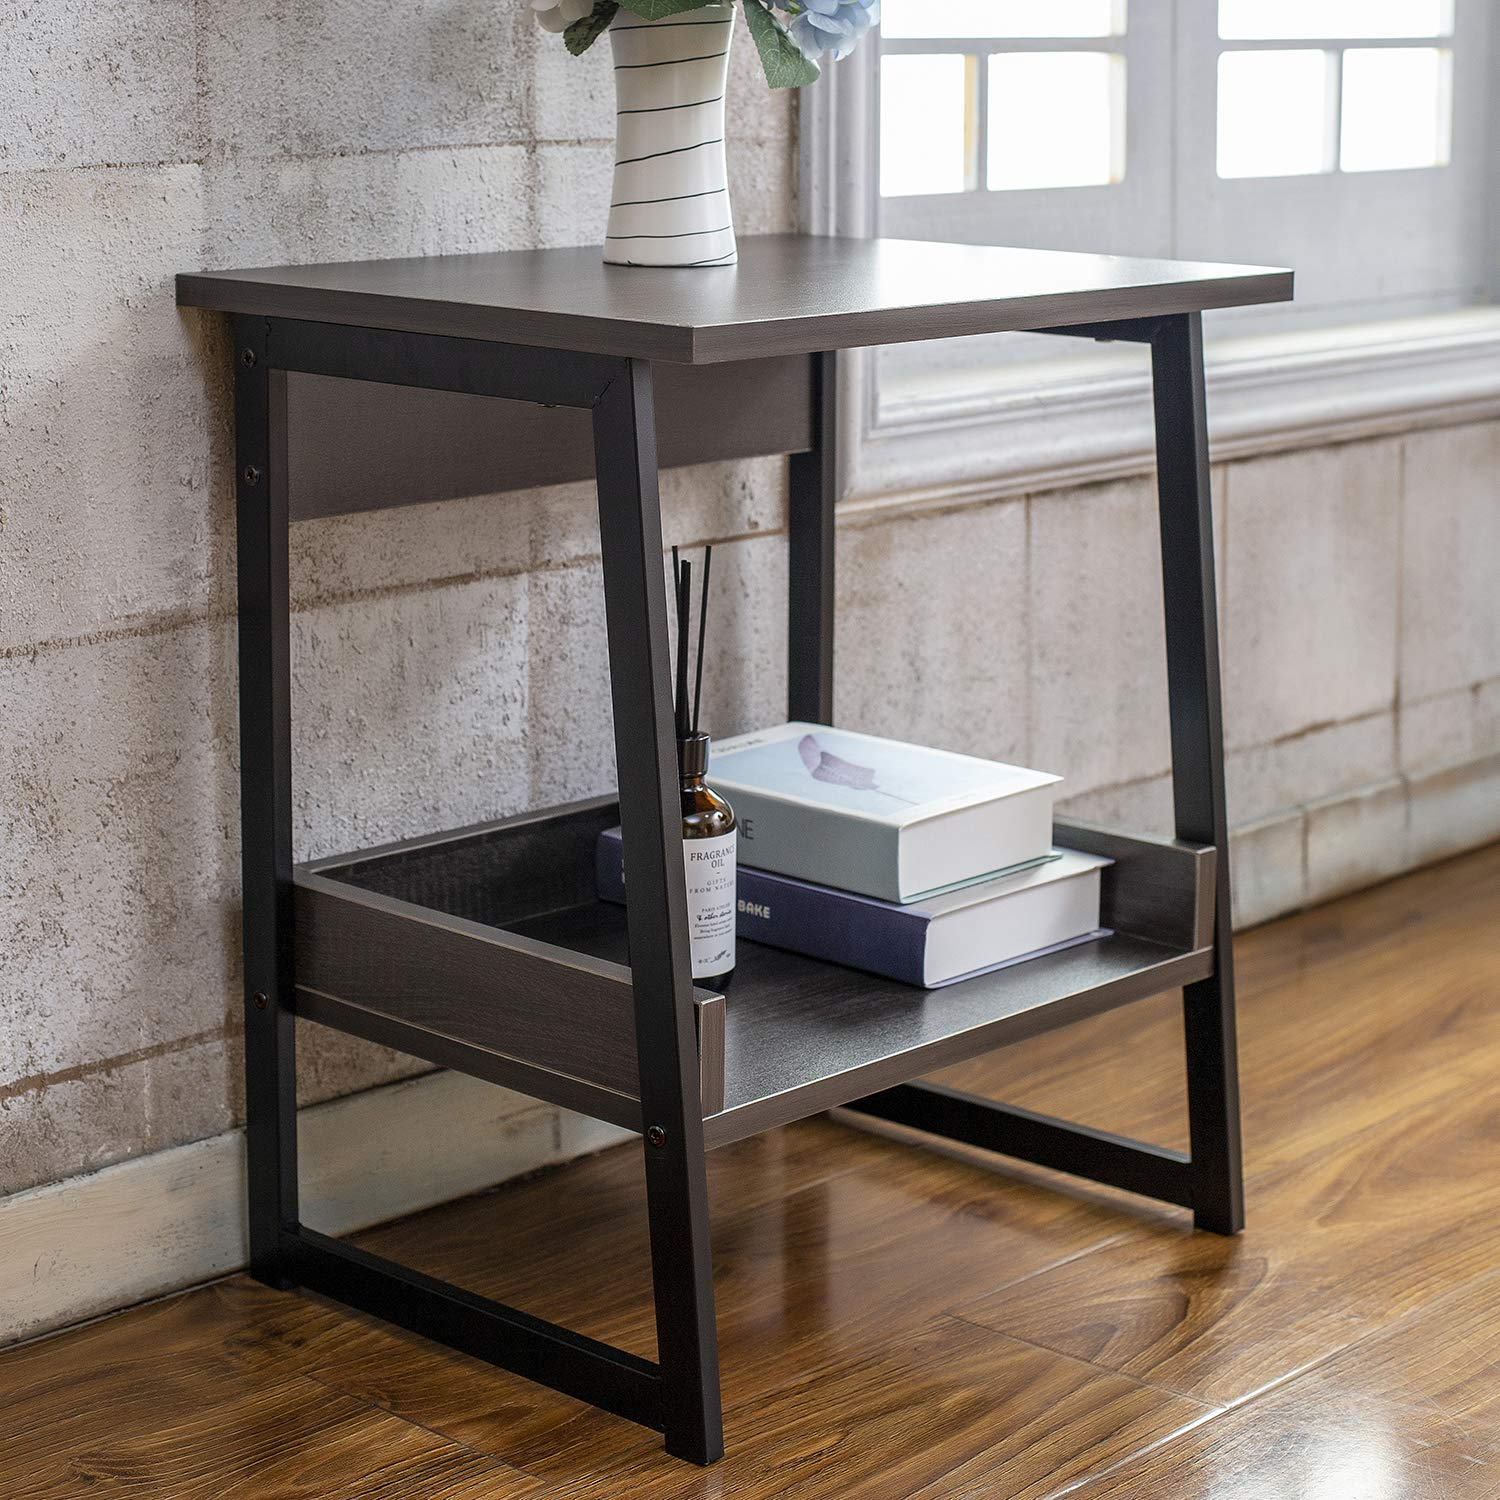 Amazon.com: HOFOME End Table, 2 Tier Storage Side Table ...